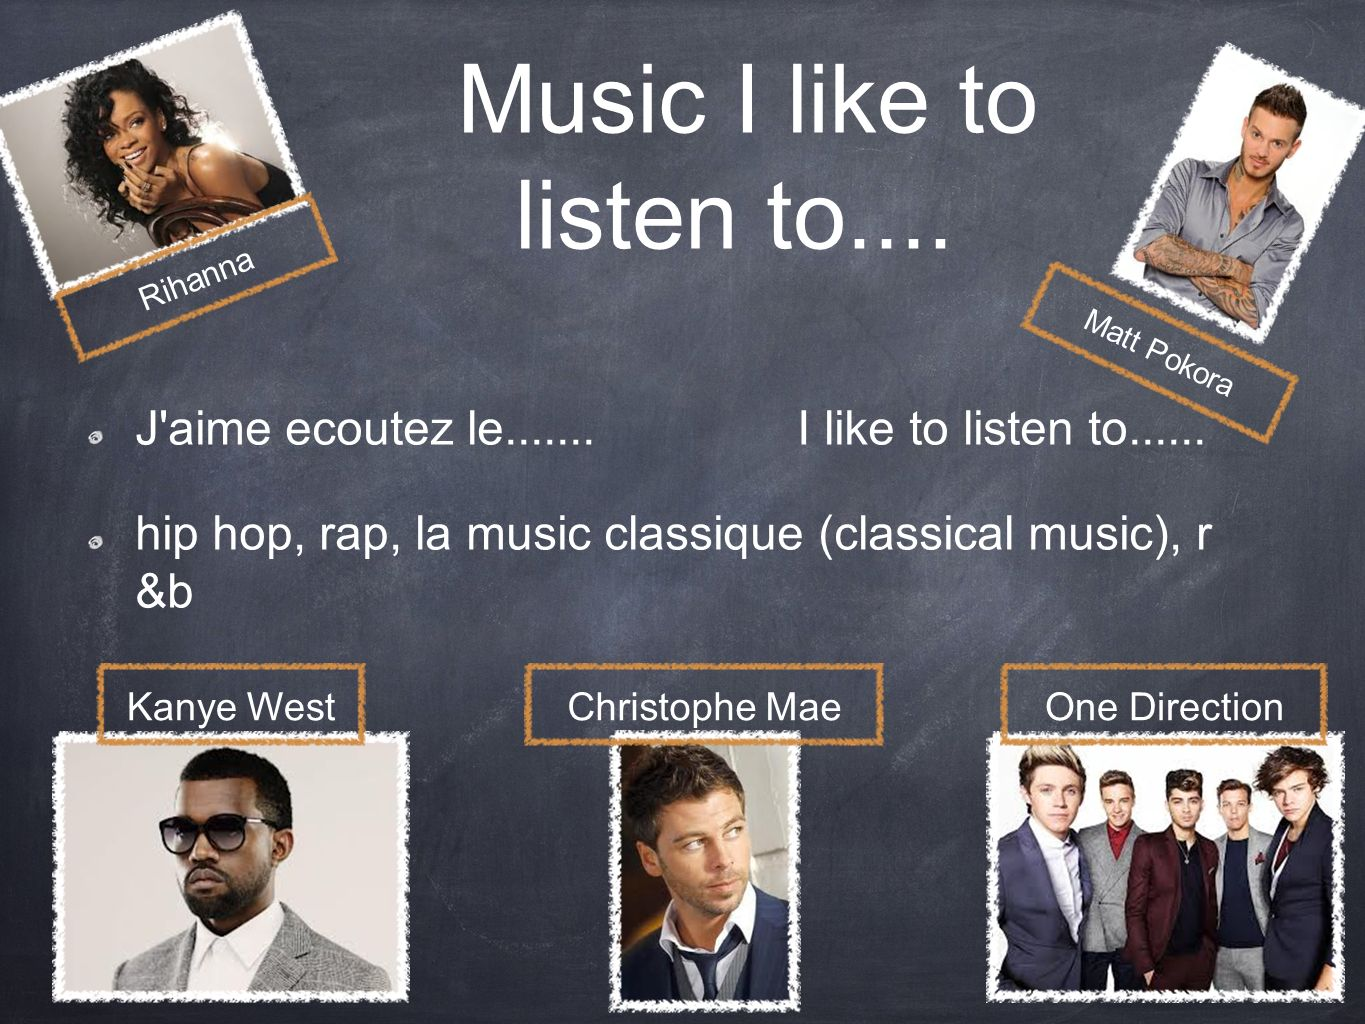 Music I like to listen to.... J'aime ecoutez le....... I like to listen to...... hip hop, rap, la music classique (classical music), r &b Matt Pokora